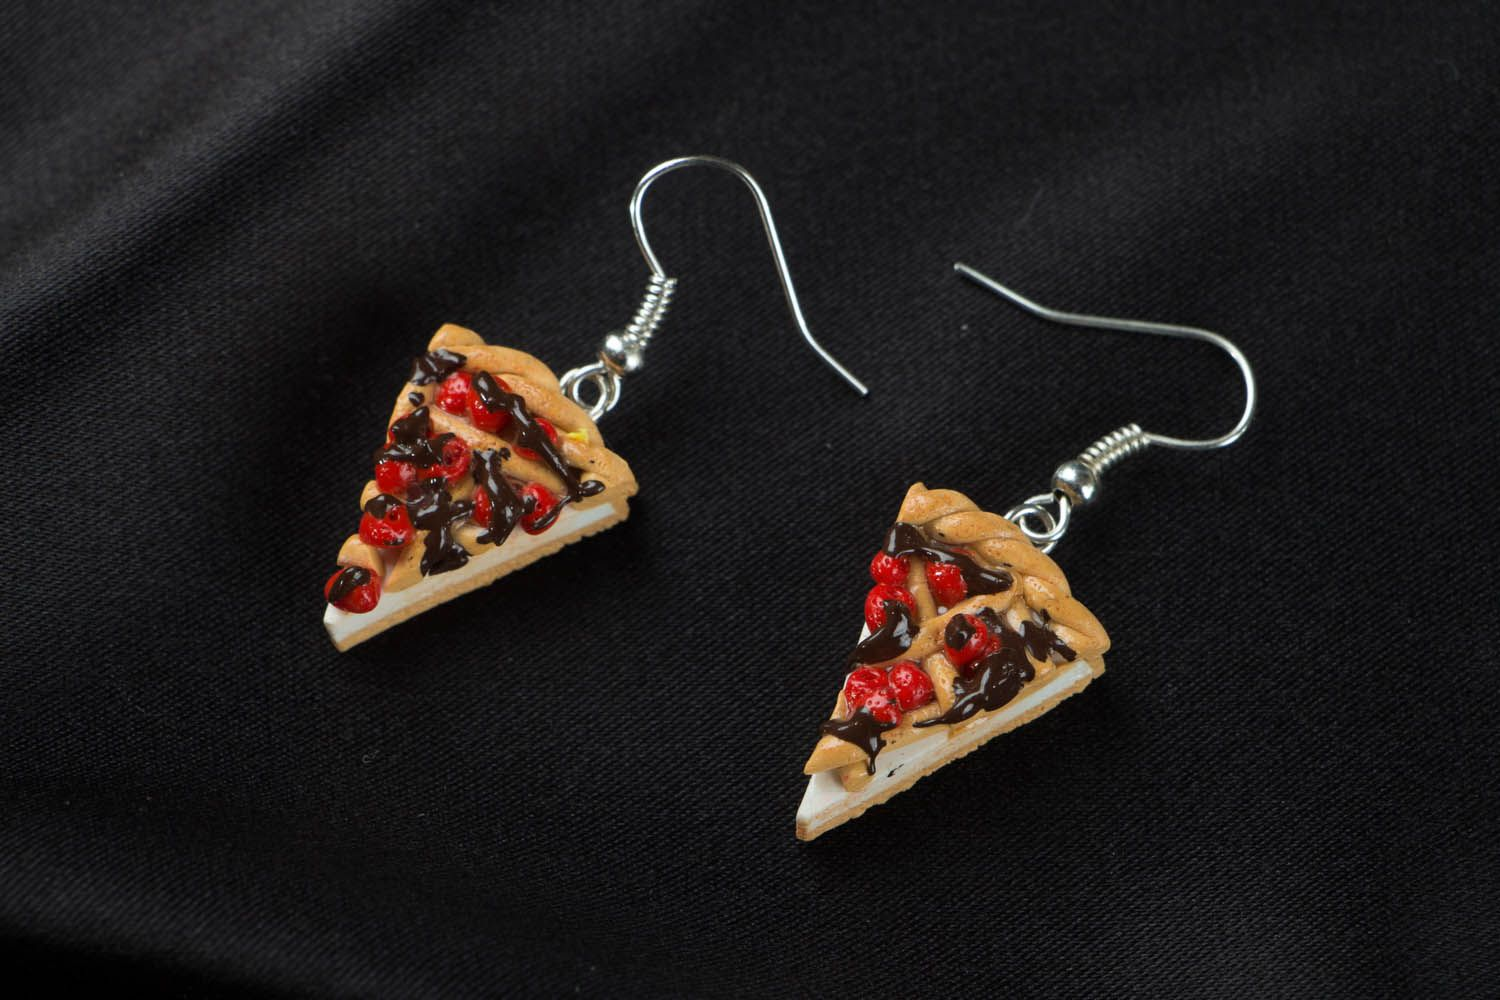 Earrings with charms in the shape of pizza photo 1